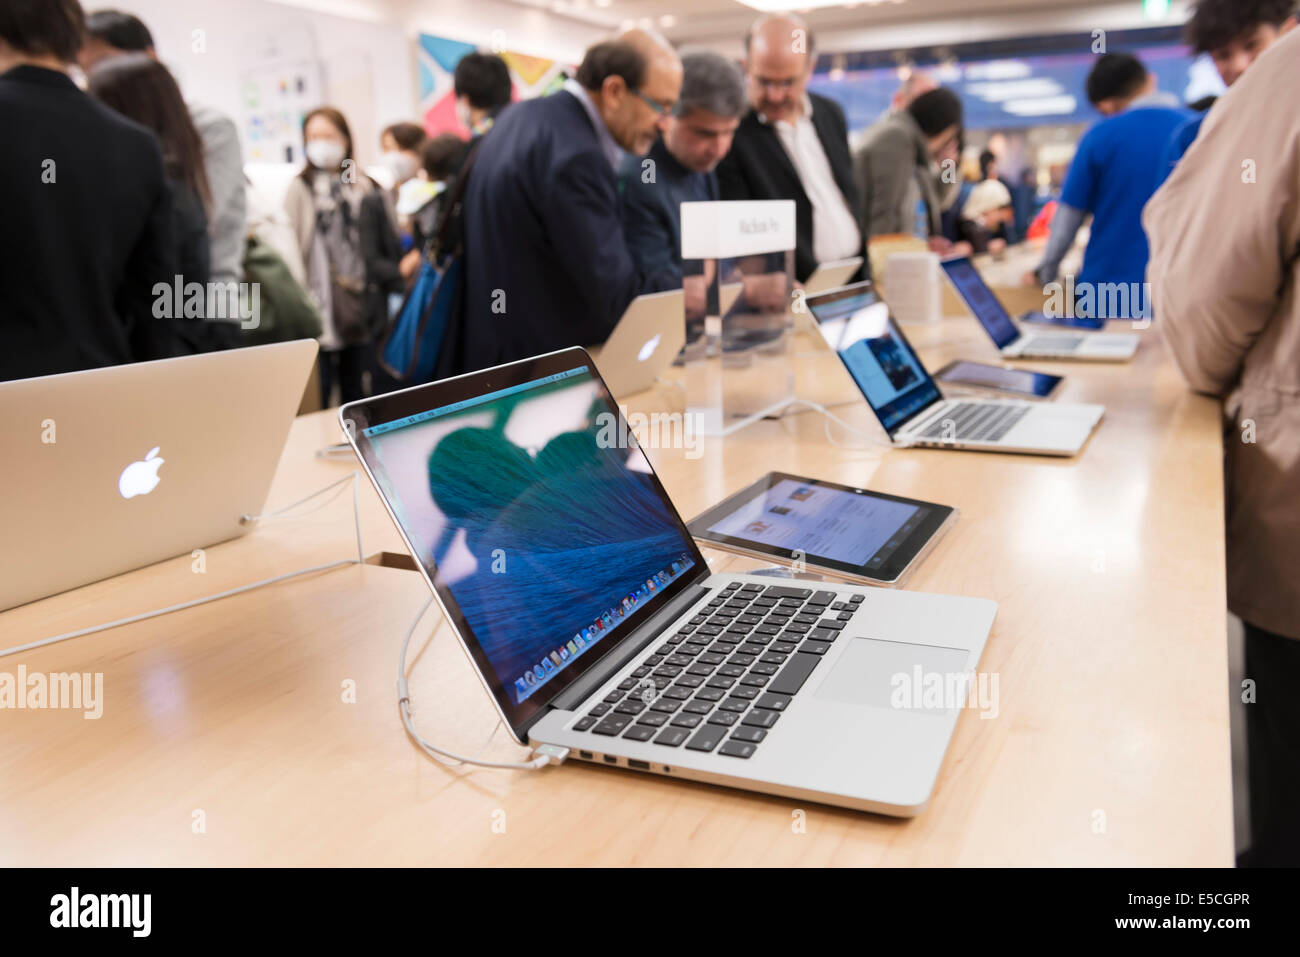 People at Apple store trying new MacBooks laptop computers. Ginza, Tokyo, Japan 2014 - Stock Image